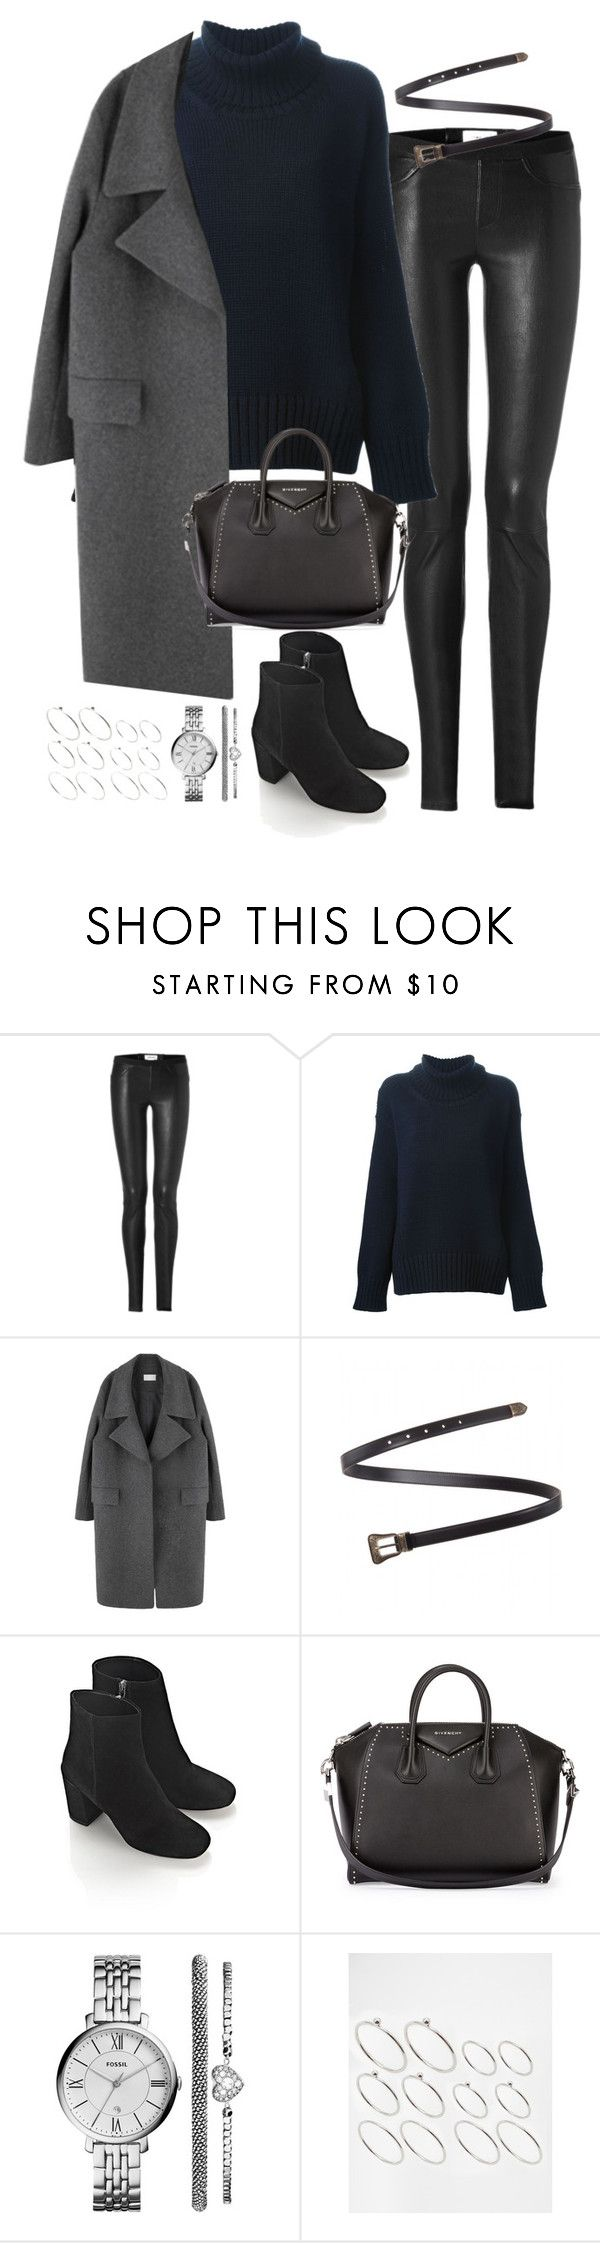 """""""Untitled#4089"""" by fashionnfacts ❤ liked on Polyvore featuring Helmut Lang, Forte Forte, Yves Saint Laurent, Alexander Wang, Givenchy, FOSSIL and ASOS"""